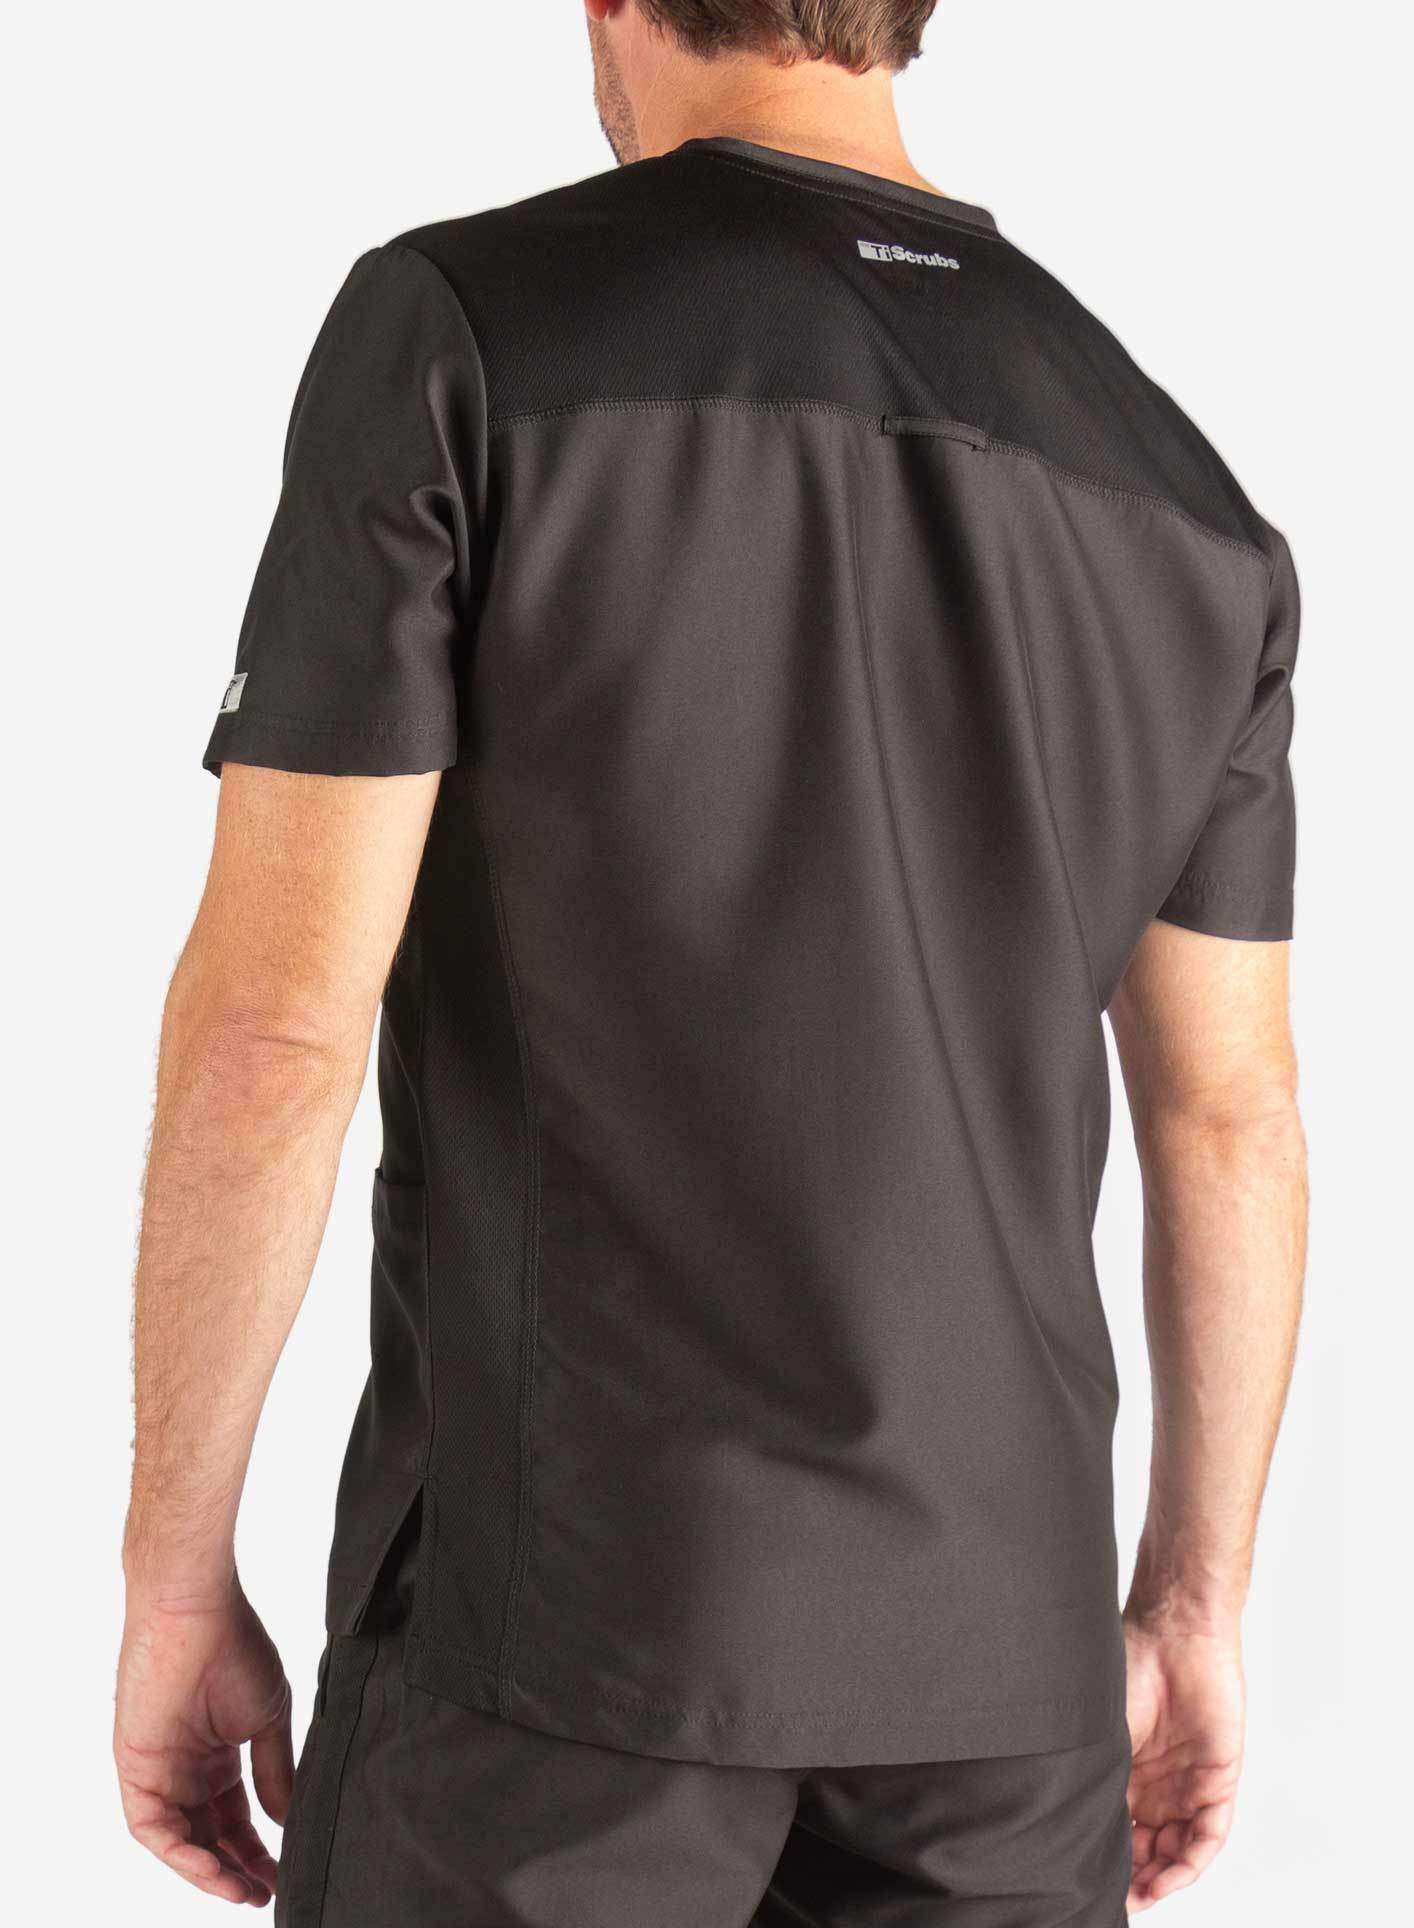 Men's 3 Pocket Scrub Top in Black Back